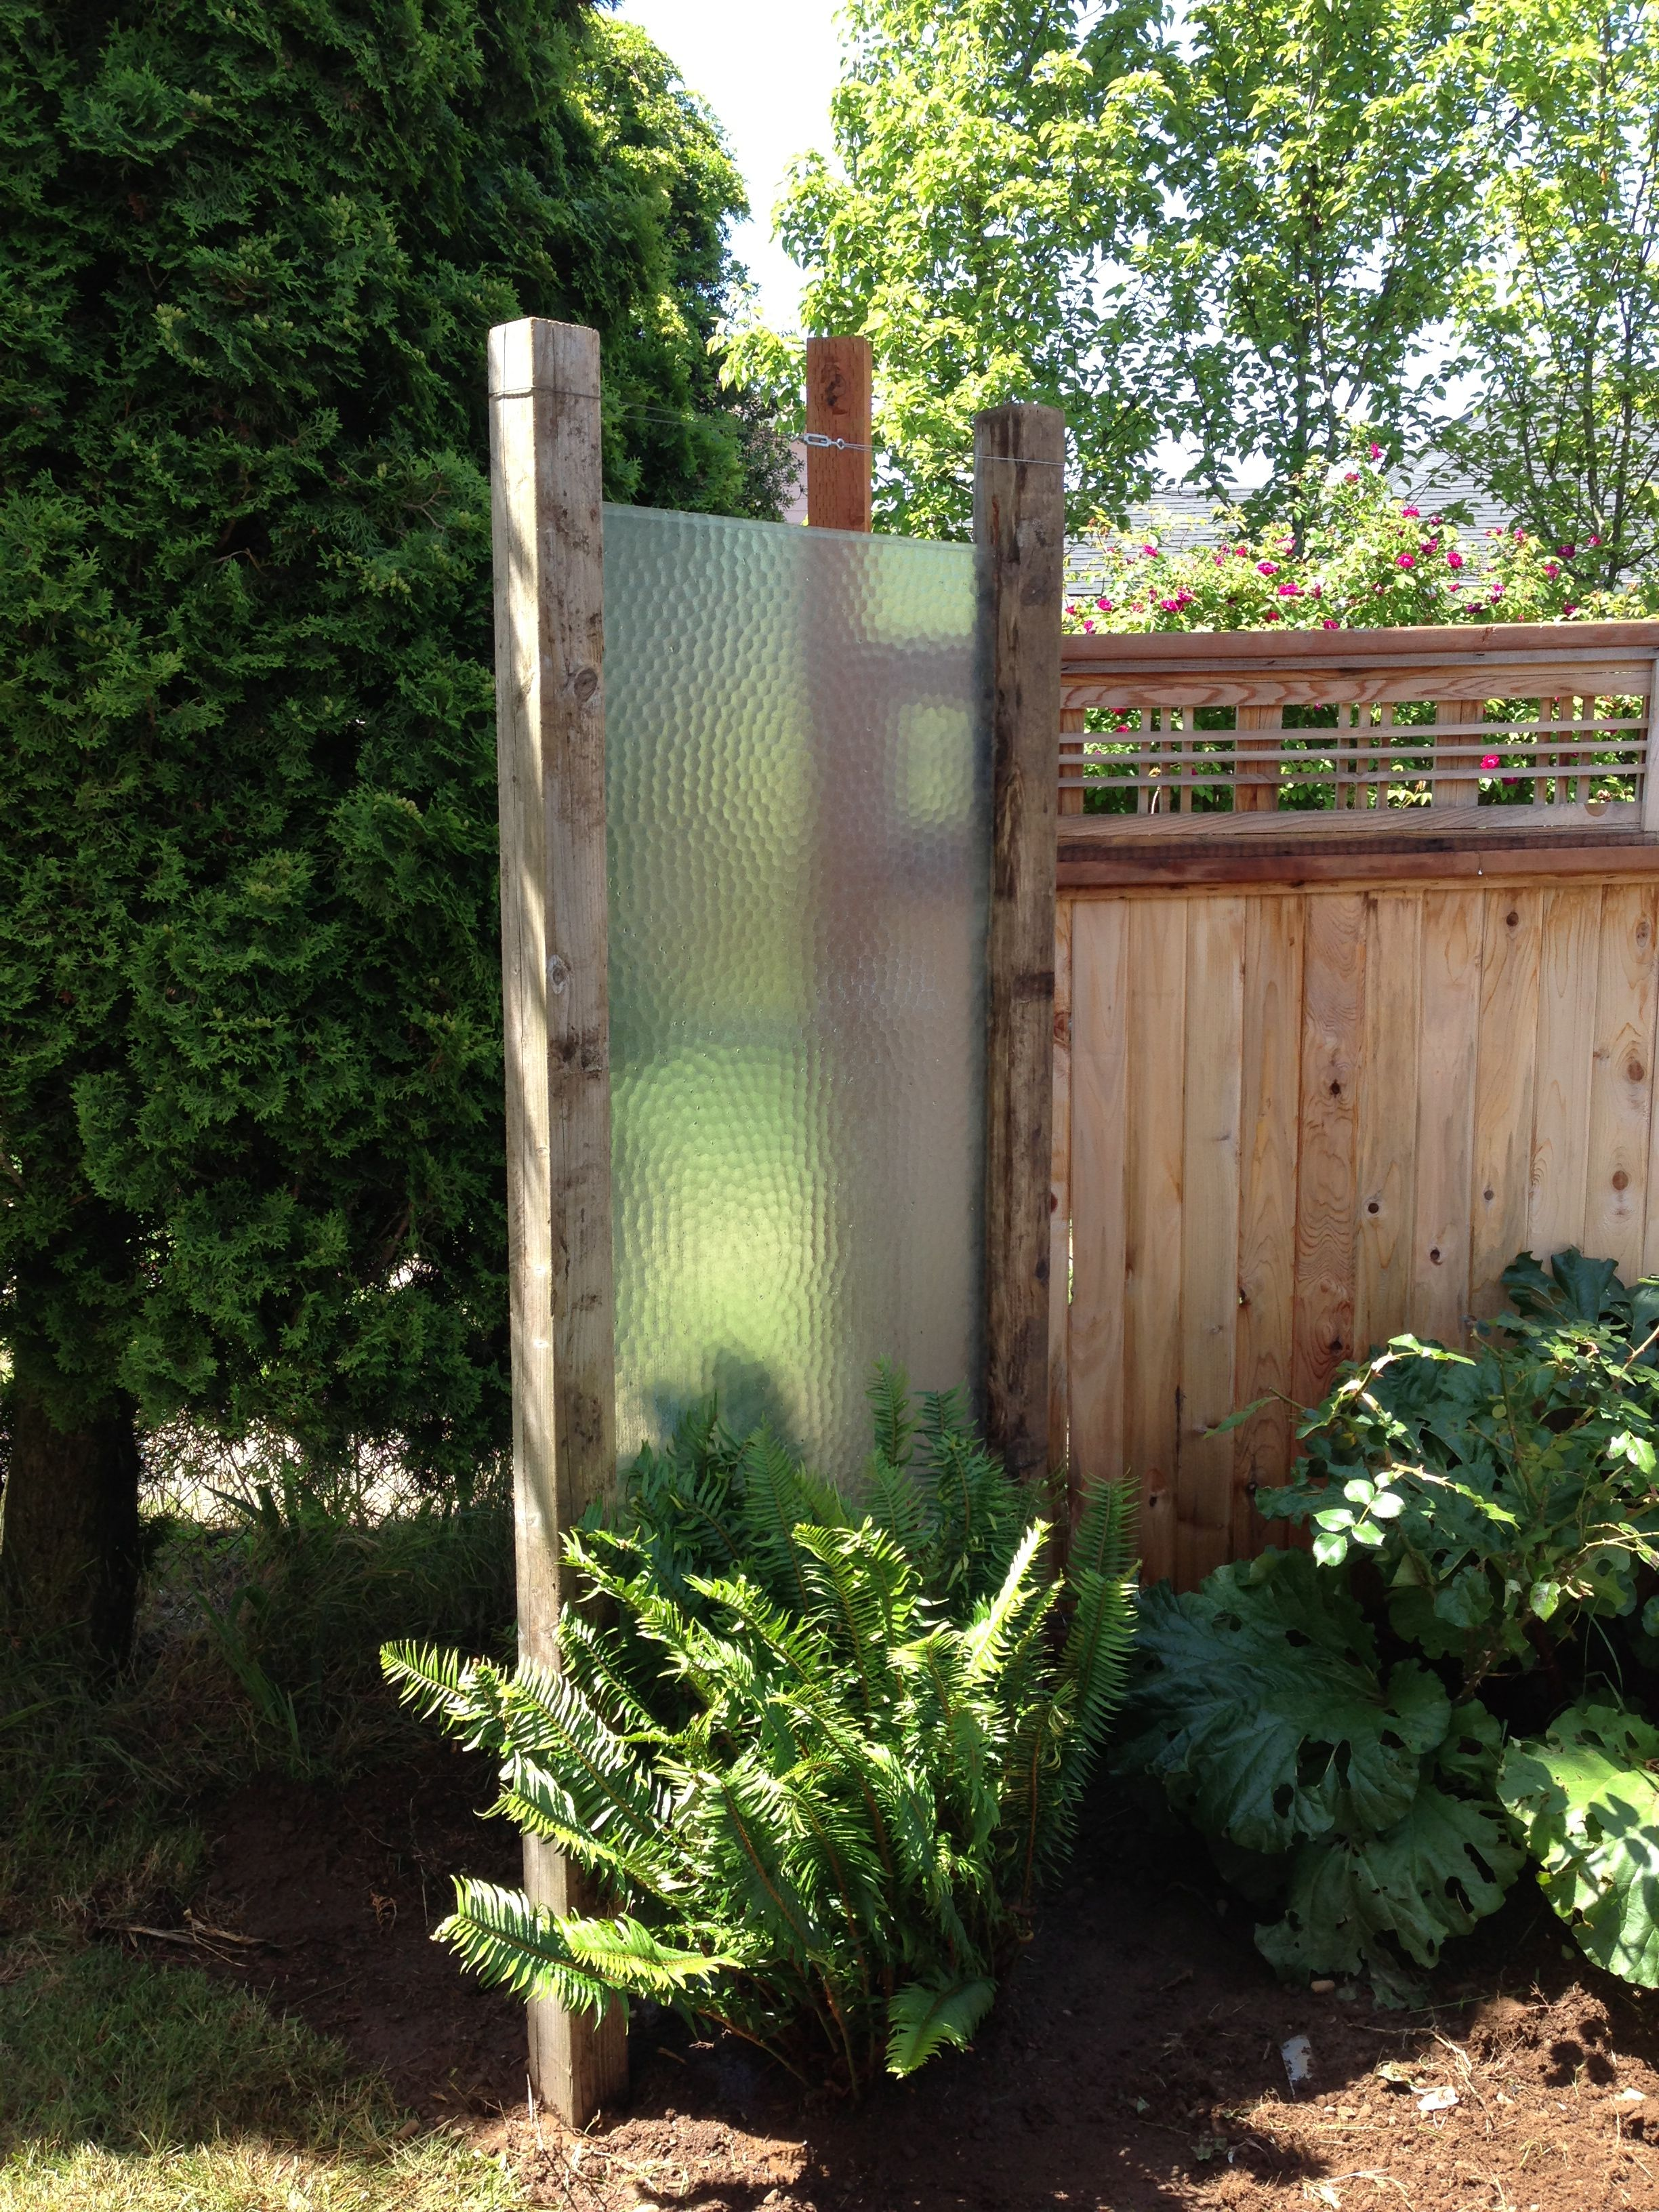 up cycled turned an old shower door into an outdoor privacy